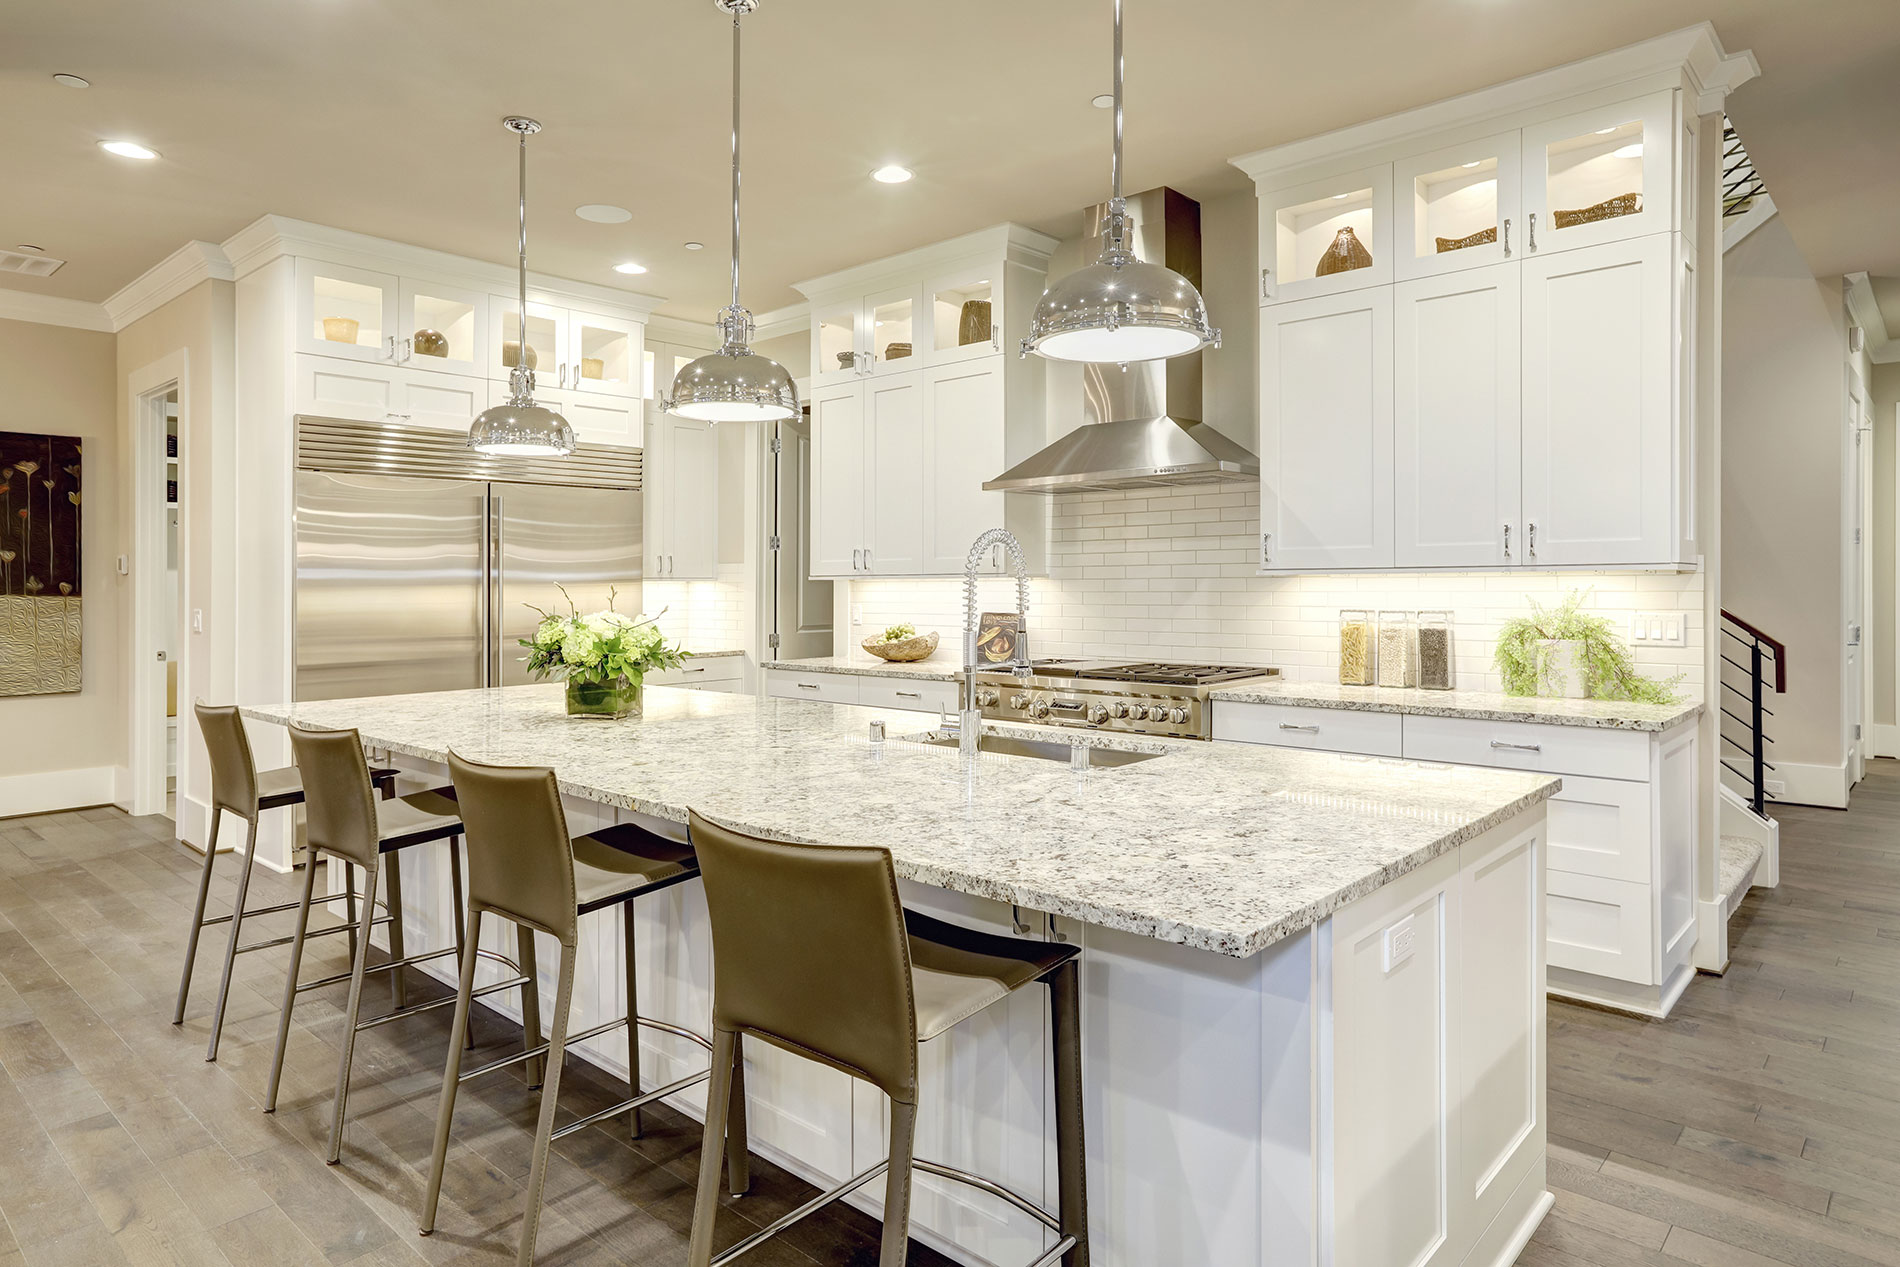 How To Keep Your Countertops Clean From Coronavirus